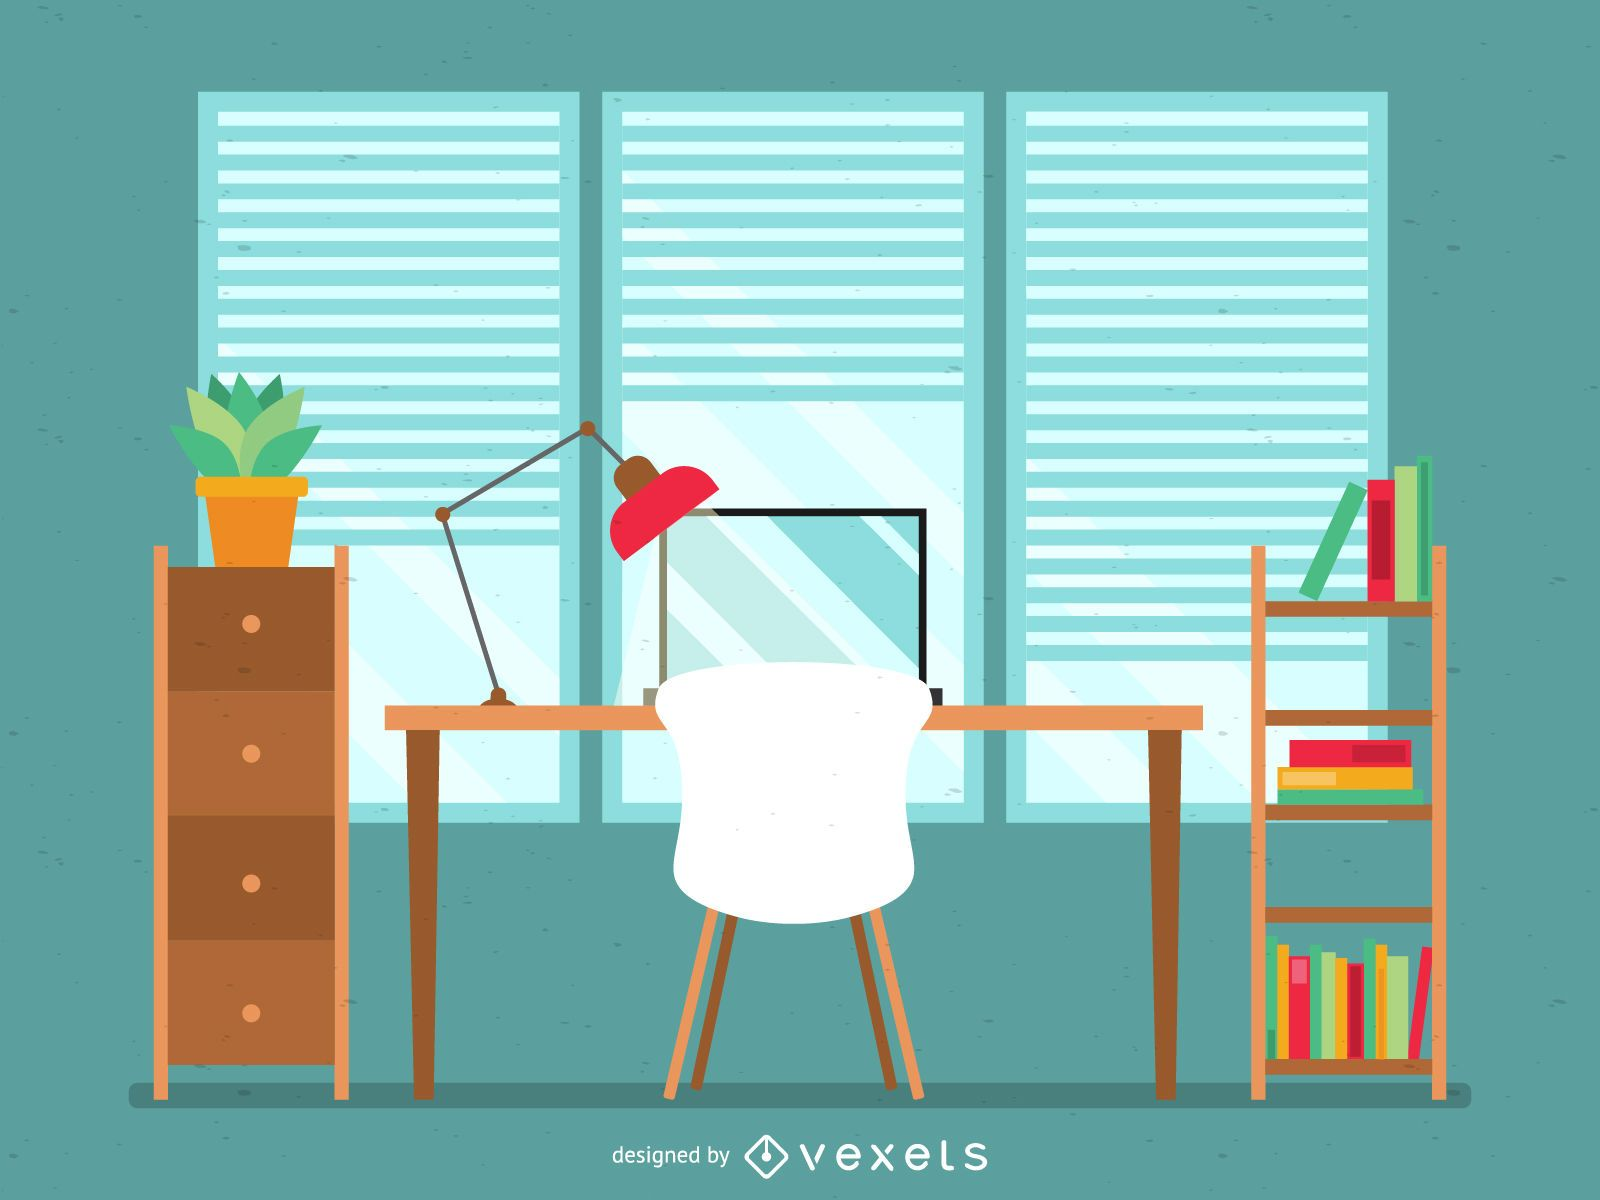 Flat office desk illustration in green and brown